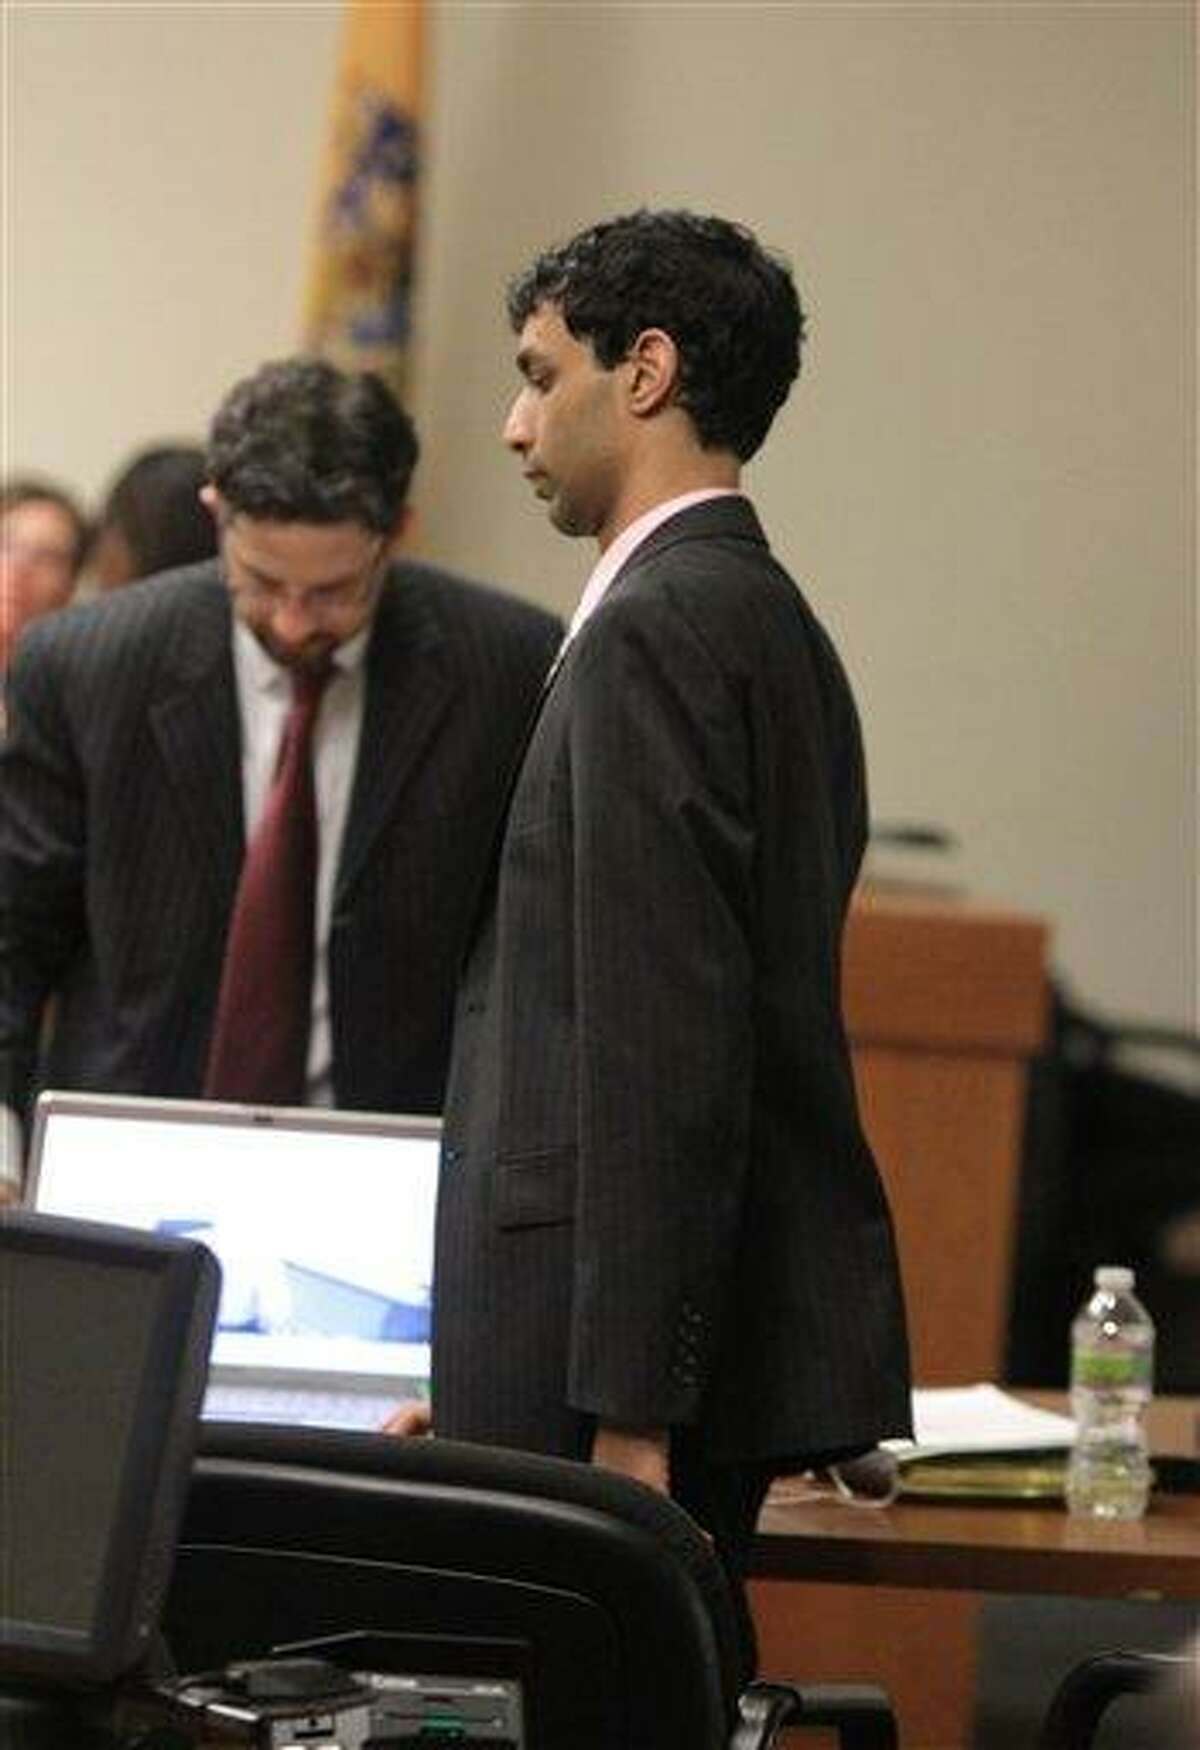 Defense attorney Philip Nettl, left, and former Rutgers student Dharun Ravi wait for the start of summations during Ravi's trial at the Middlesex County Courthouse in New Brunswick, N.J., Tuesday. Associated Press